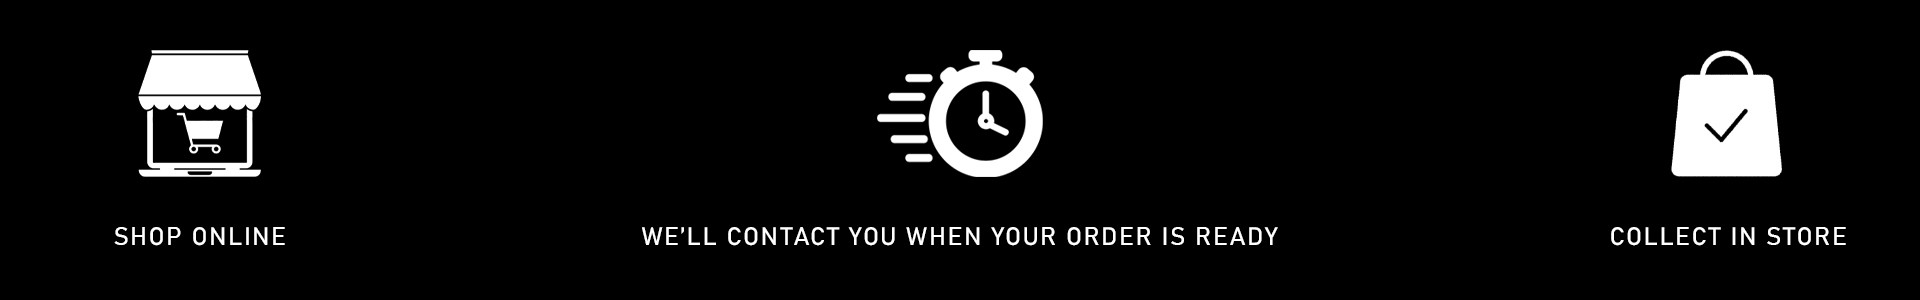 Shop Online, We'll contact you when your order is ready, Collect in store